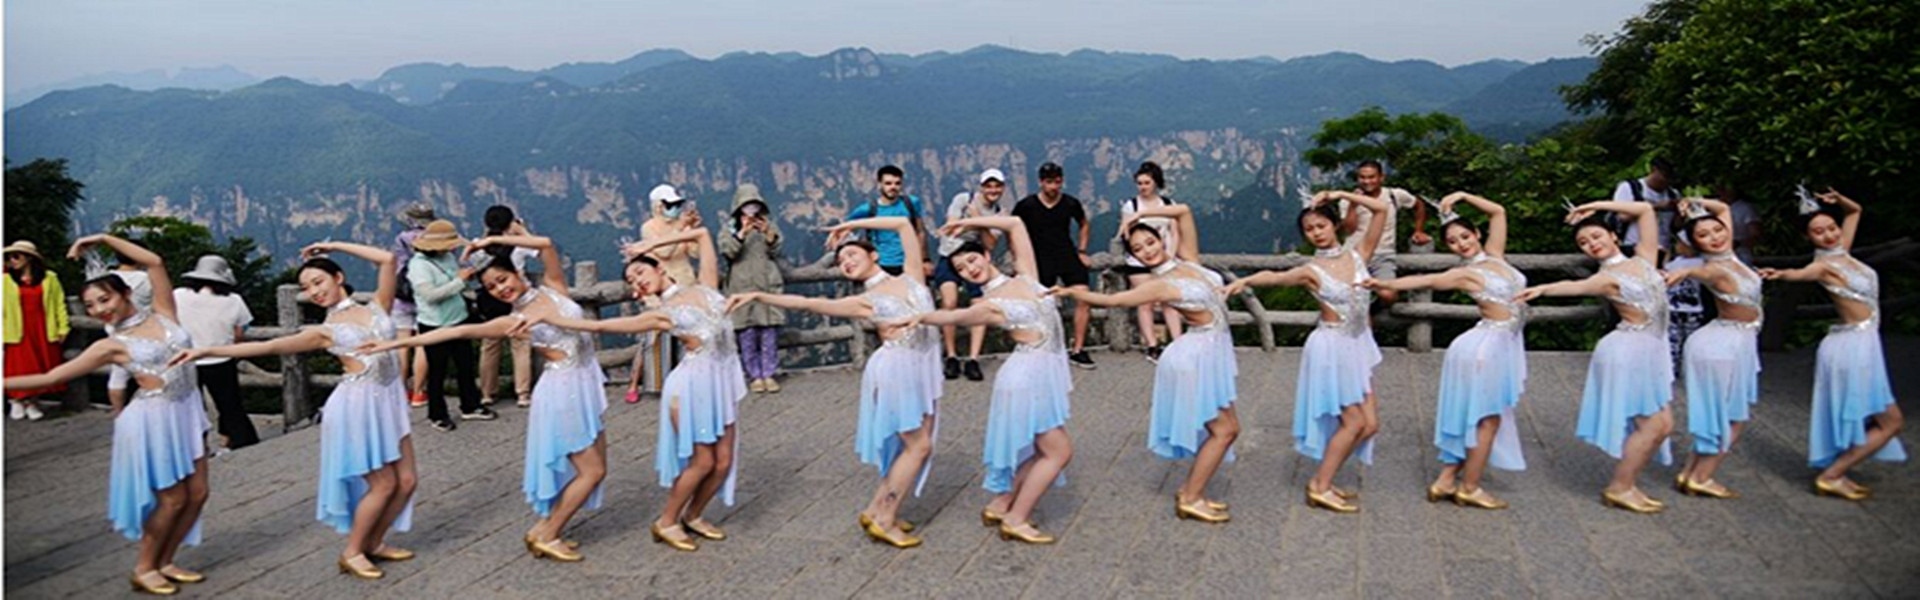 Actresses from Zhangjiajie Romantic Show dance in Tianzi Mountain